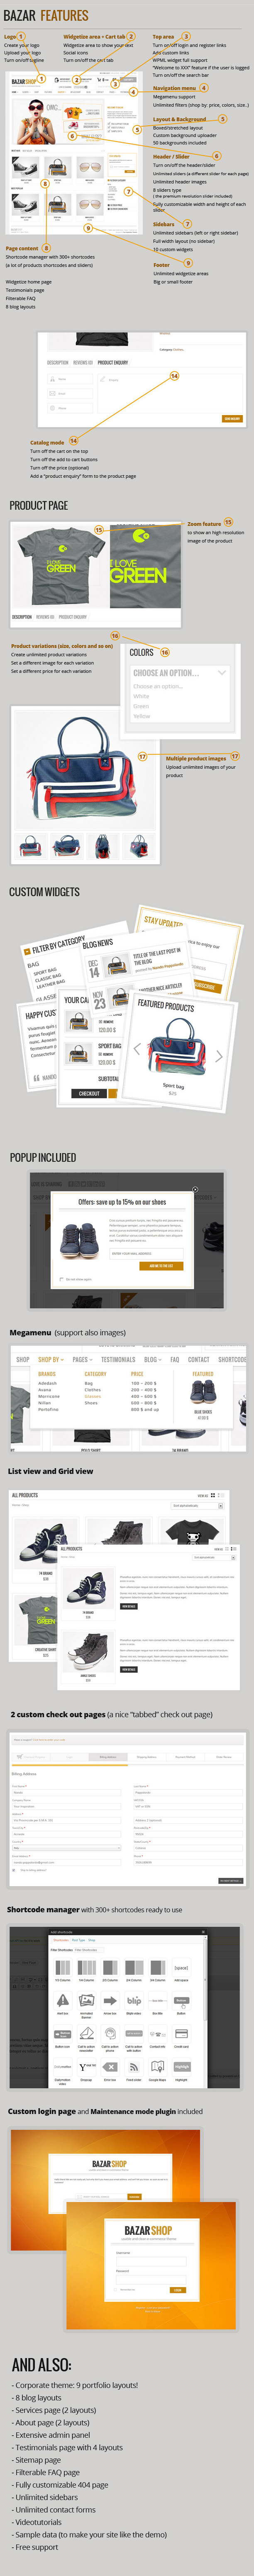 Bazar Shop - Multi-Purpose e-Commerce Theme - 3